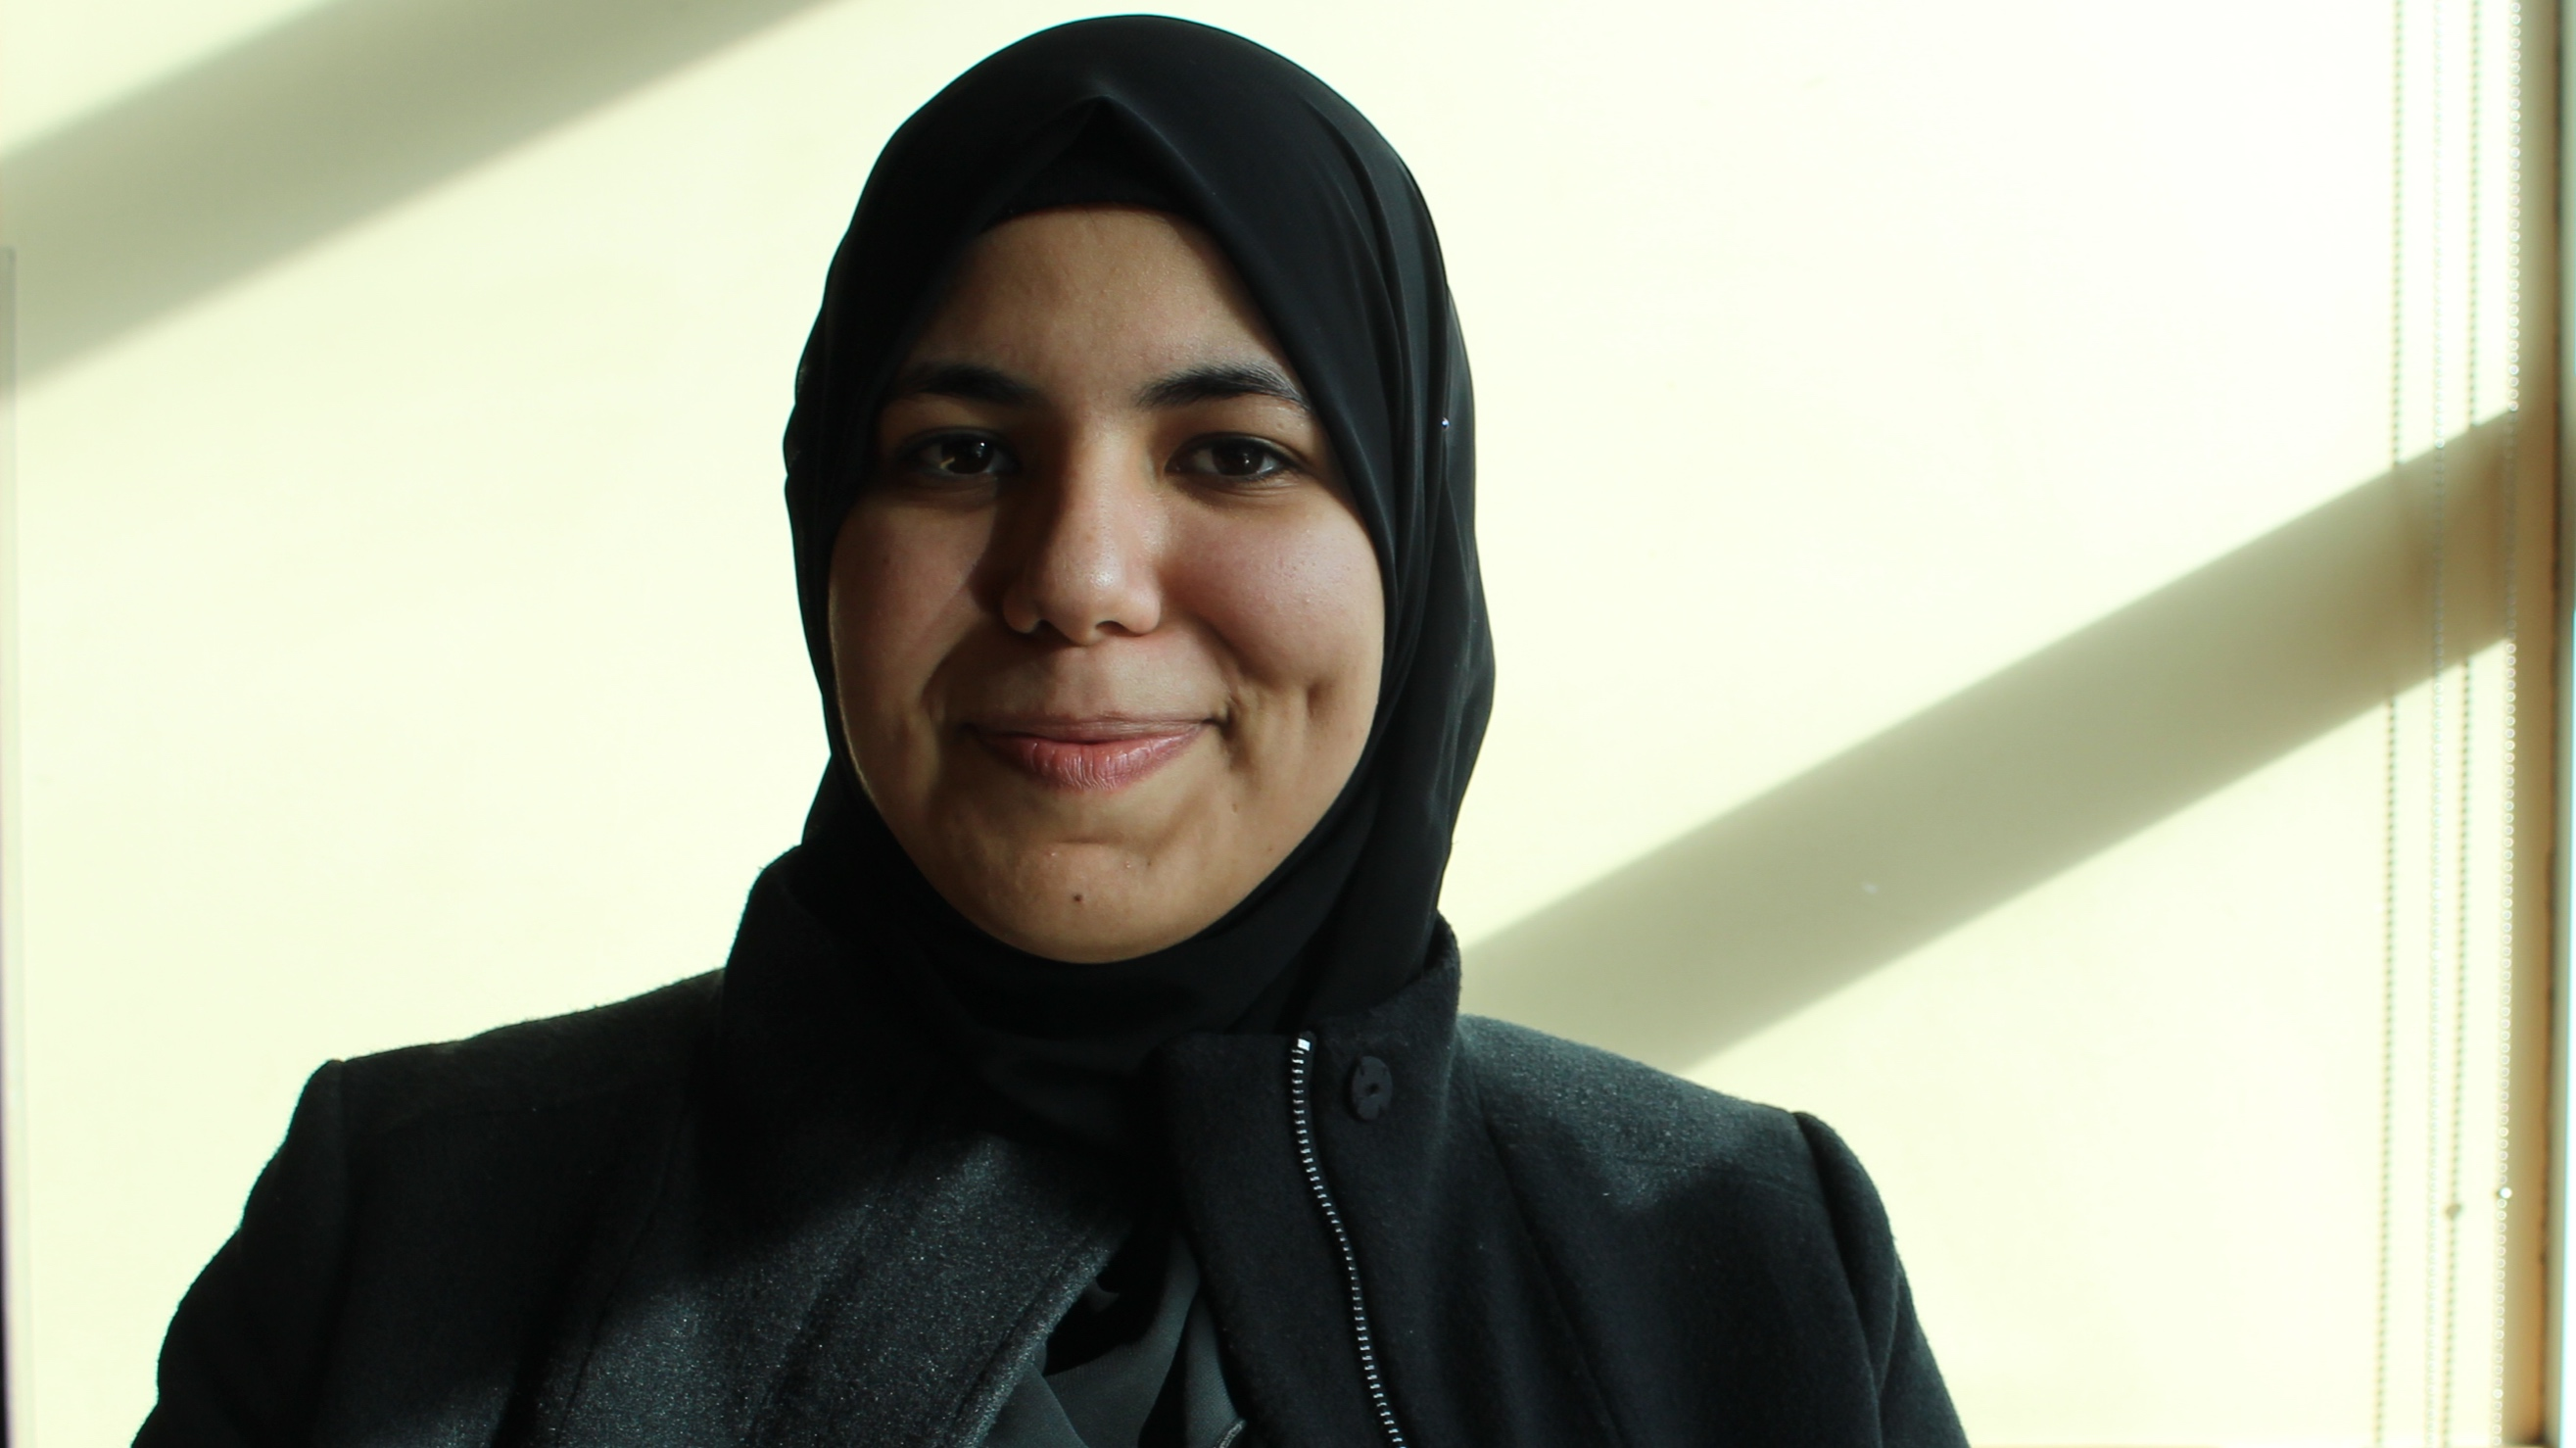 Duaa AlMasalmeh says it's difficult for newcomers to find jobs.